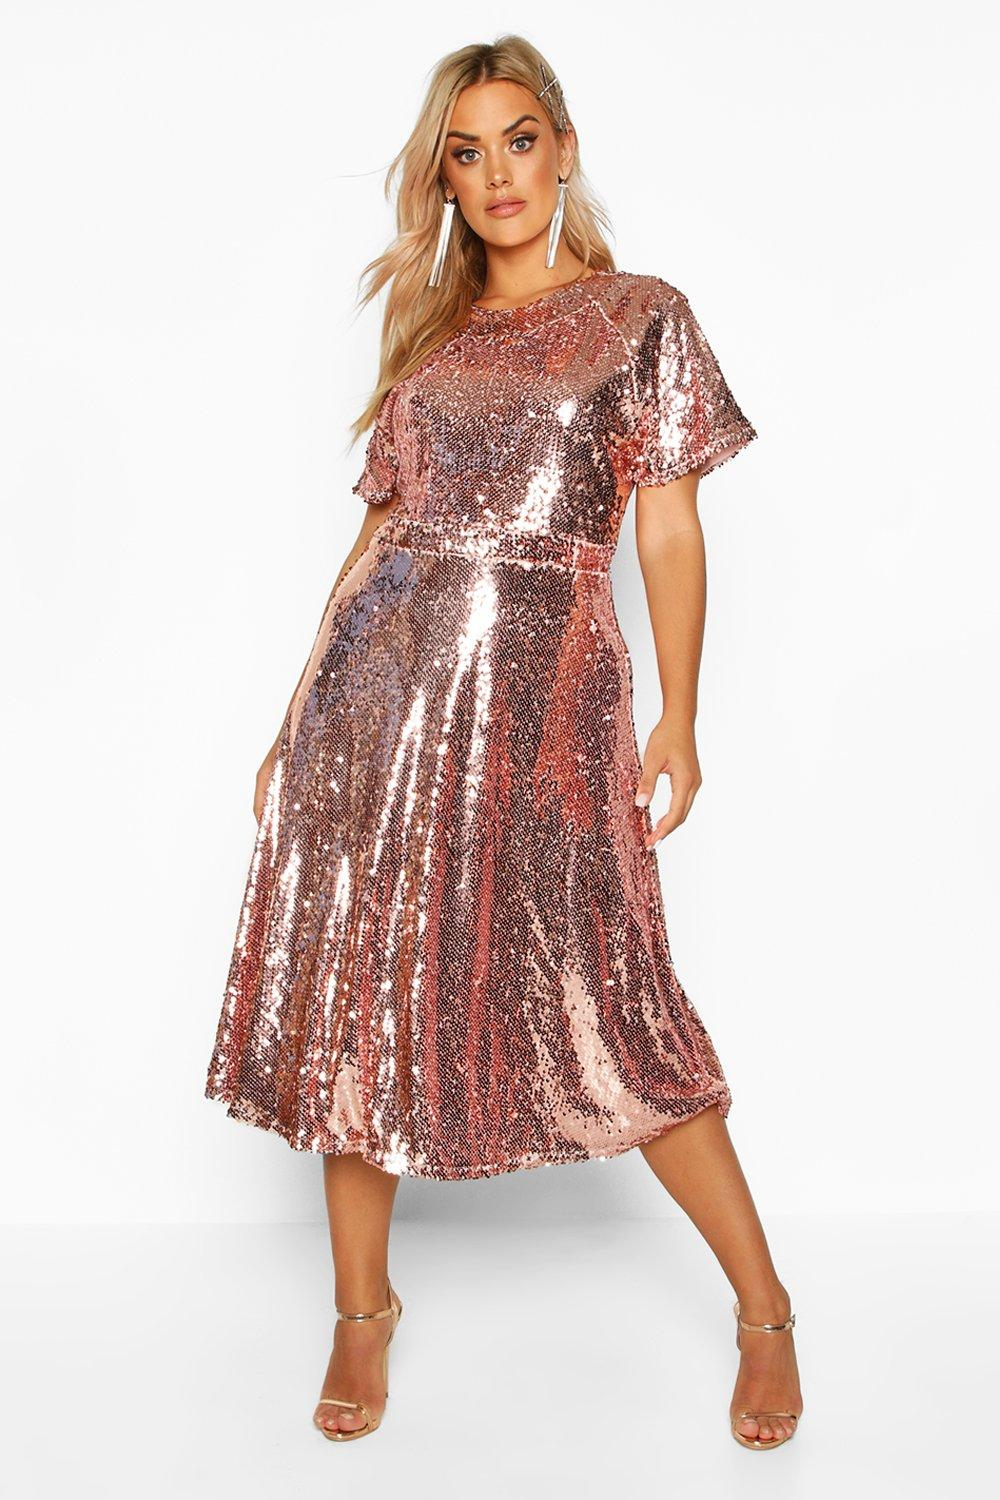 60s 70s Plus Size Dresses, Clothing, Costumes Womens Plus Sequin Midi Smock Dress - pink - 16 $76.00 AT vintagedancer.com